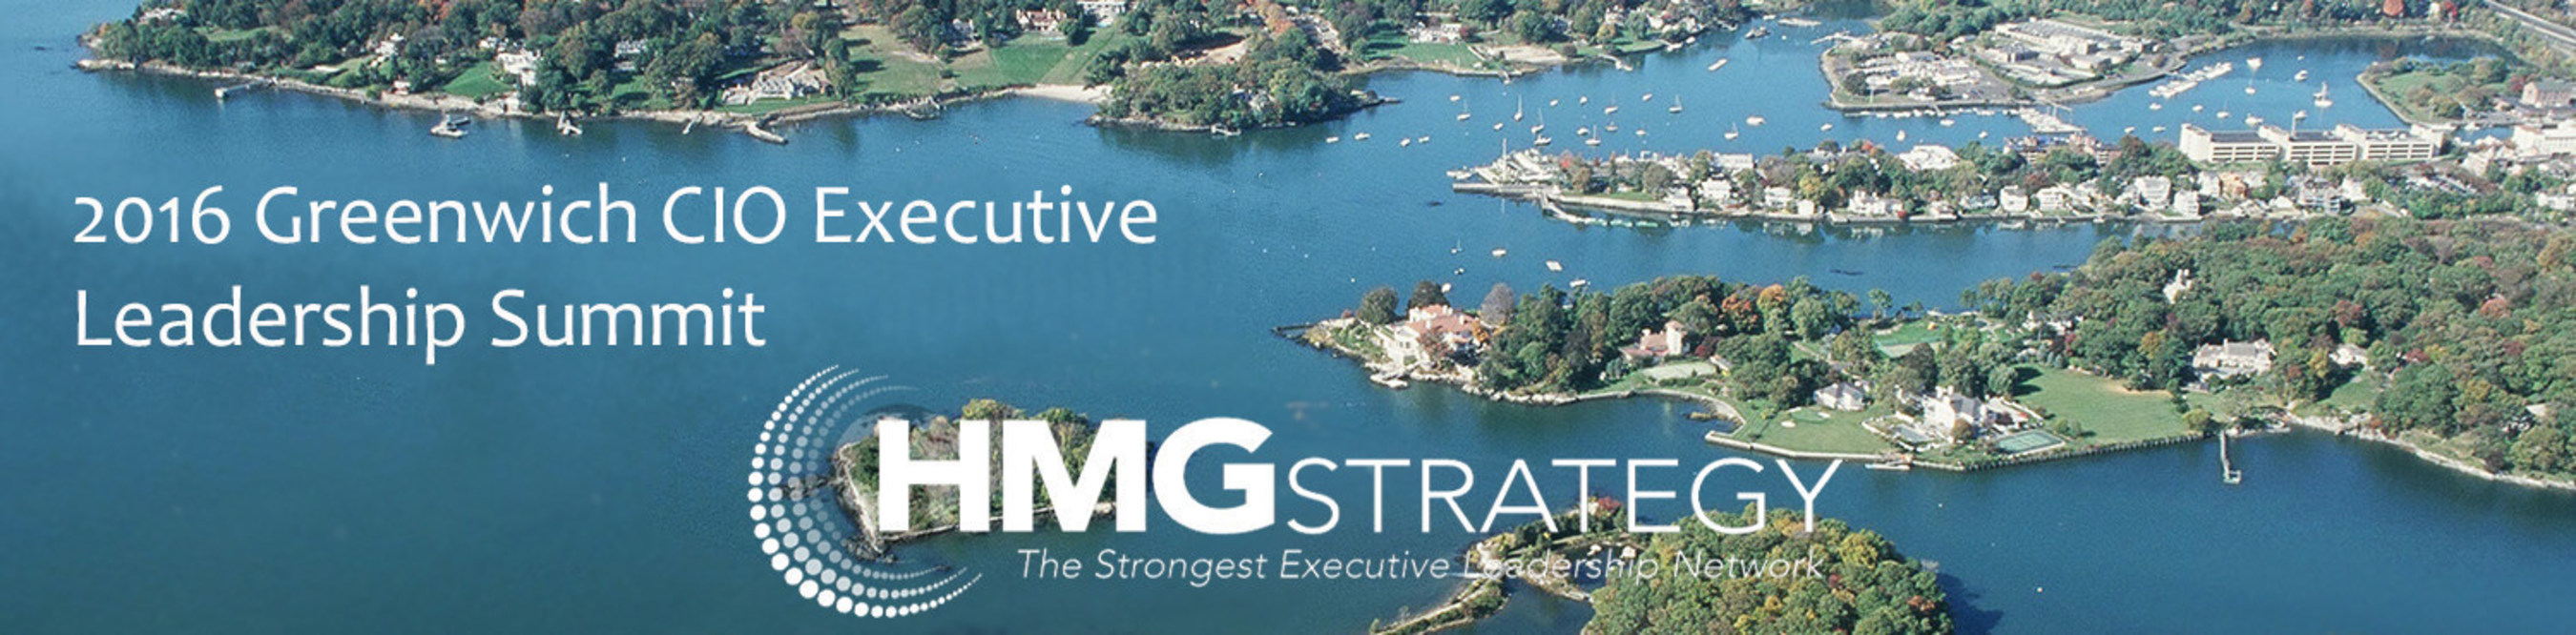 Transformational Leadership in the Digital Economy to Shape the Dialogue at HMG Strategy's Upcoming 2016 Greenwich CIO Executive Leadership Summit